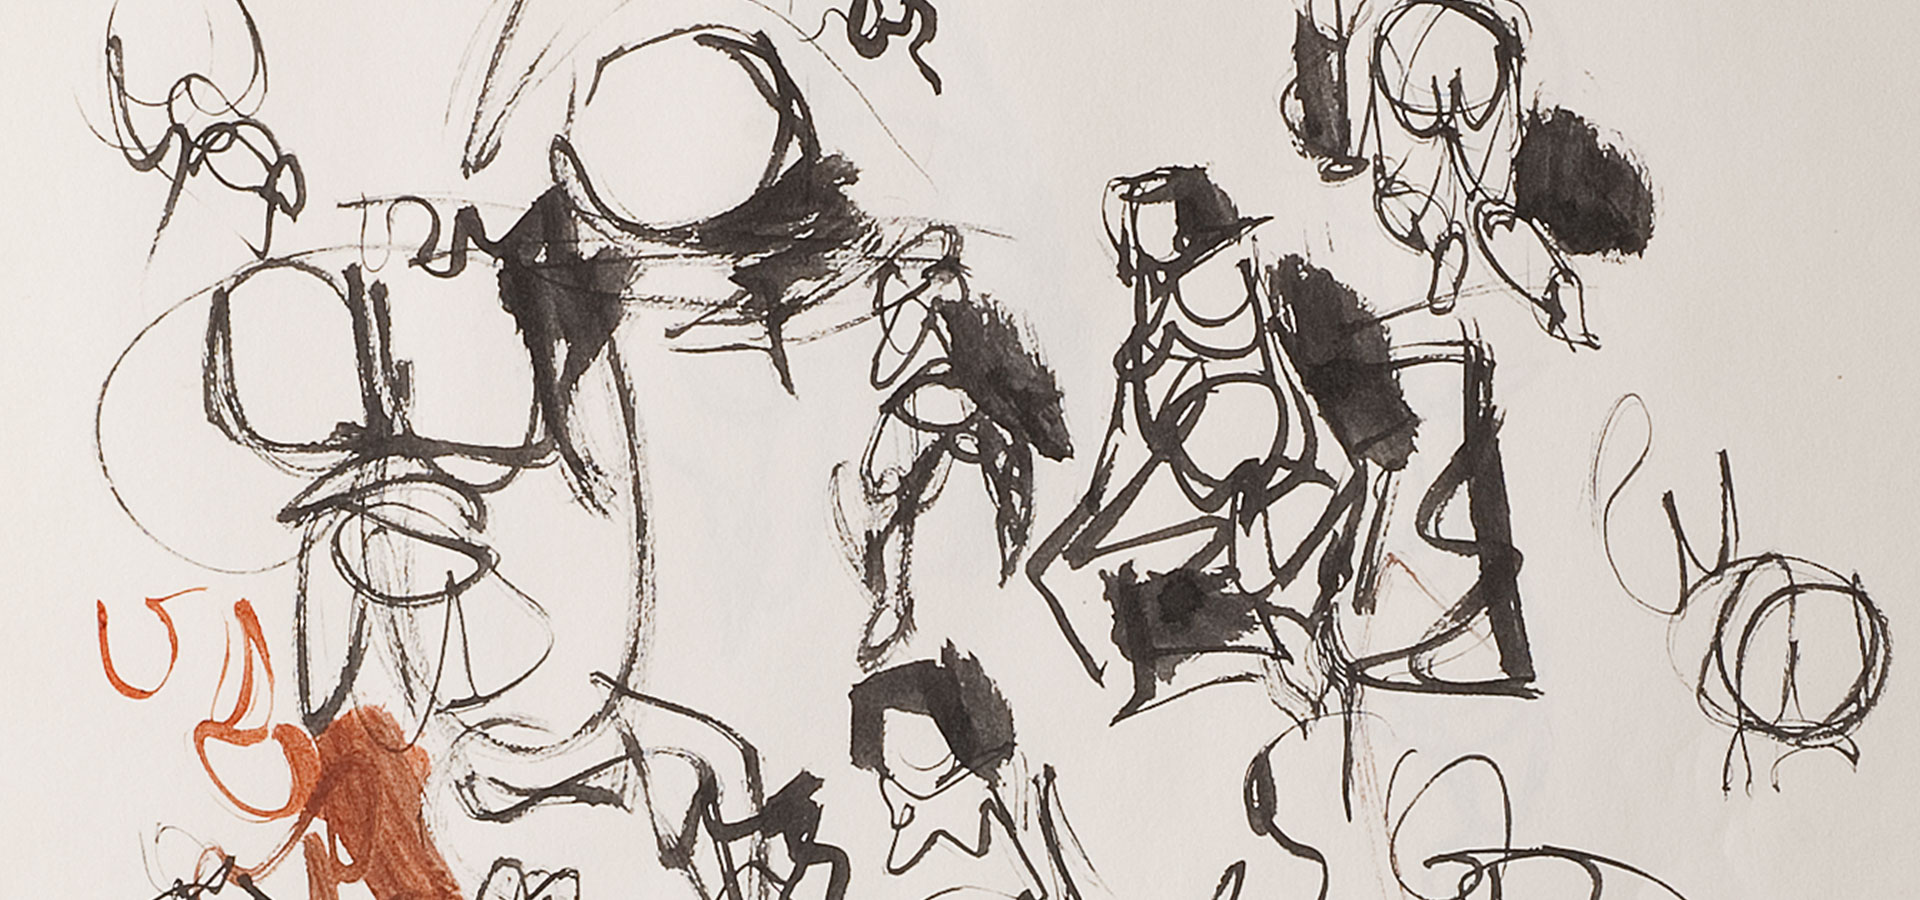 Detail from Sketchbook 06.